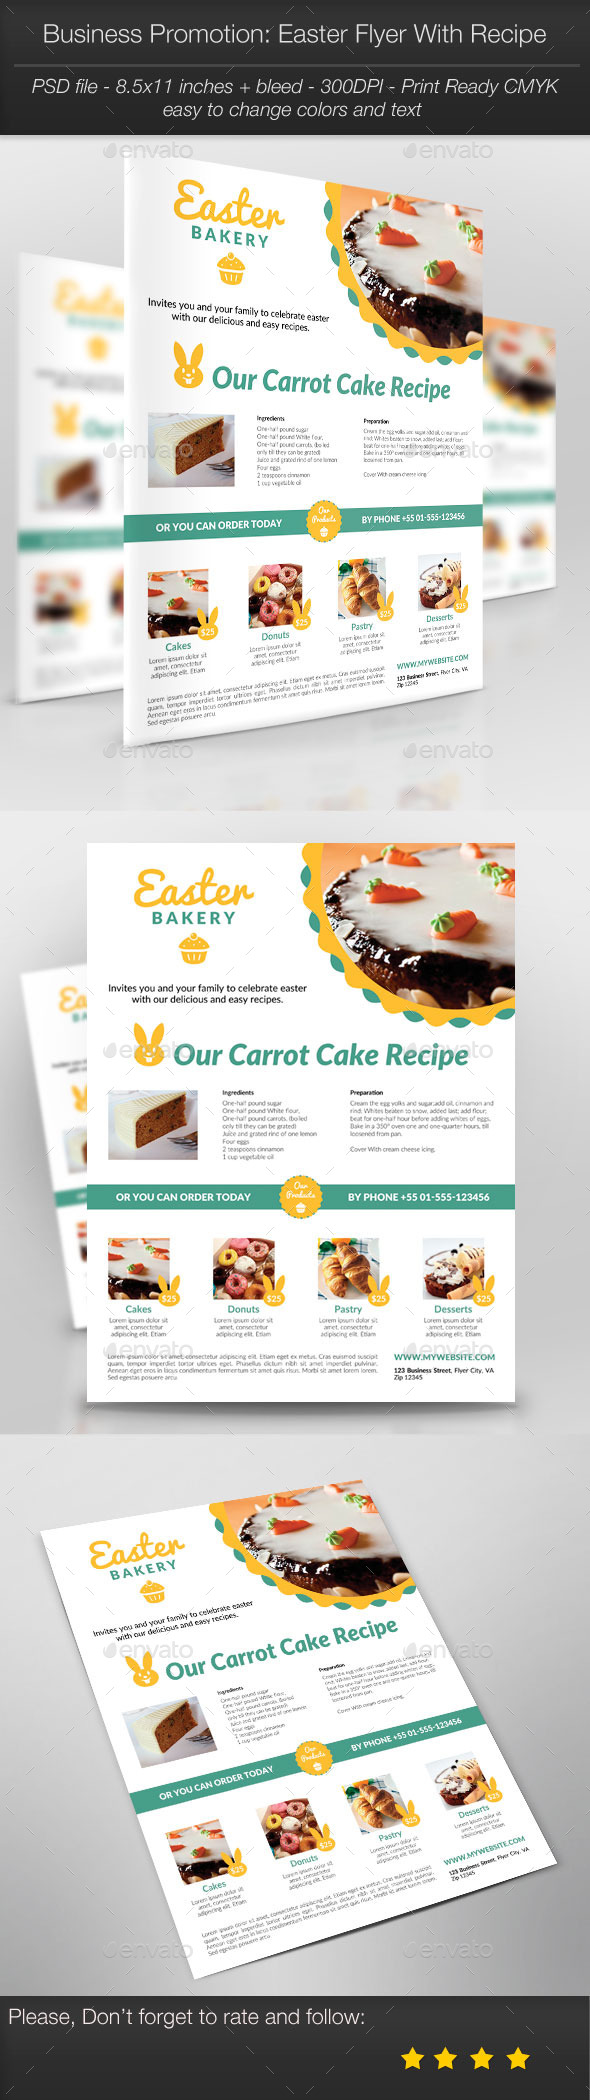 GraphicRiver Business Promotion Easter Flyer With Recipe 10920409